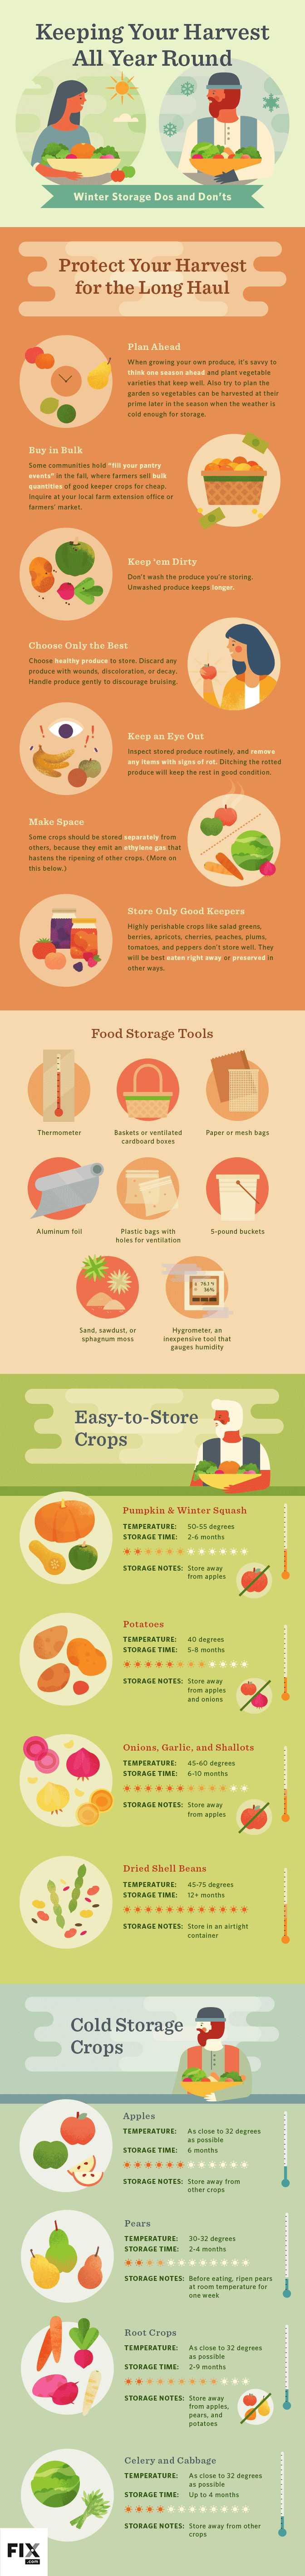 Keeping Your Harvest All Year Round Winter Storage Dos and Don'ts #infographic